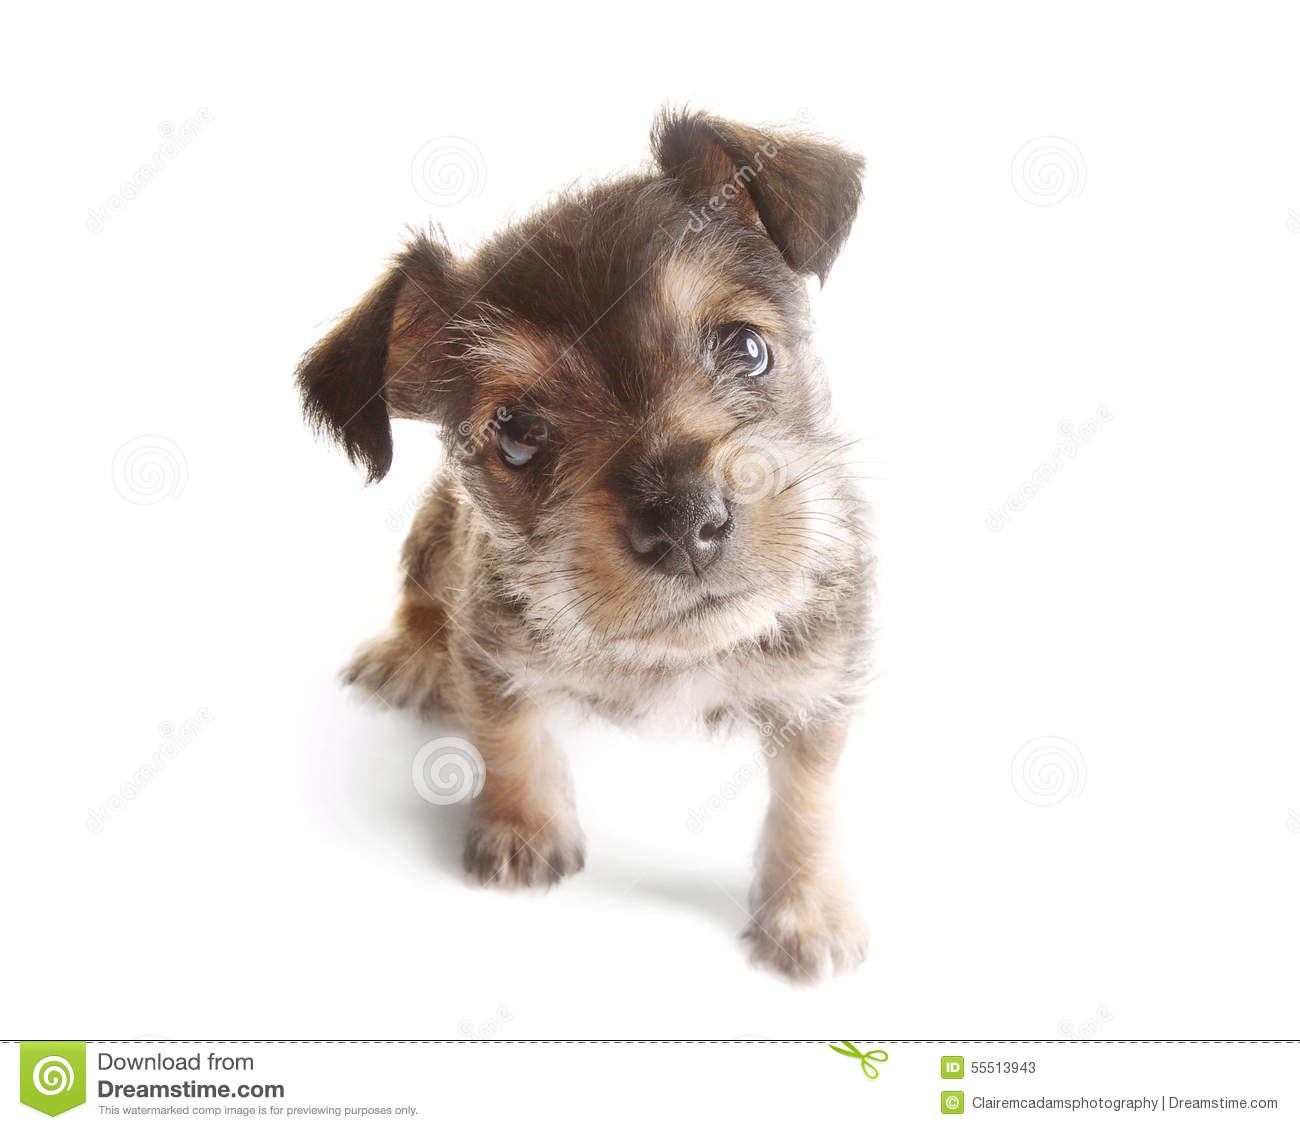 Image For The Chorkie A Chihuahua Yorkshire Terrier Mix Breed